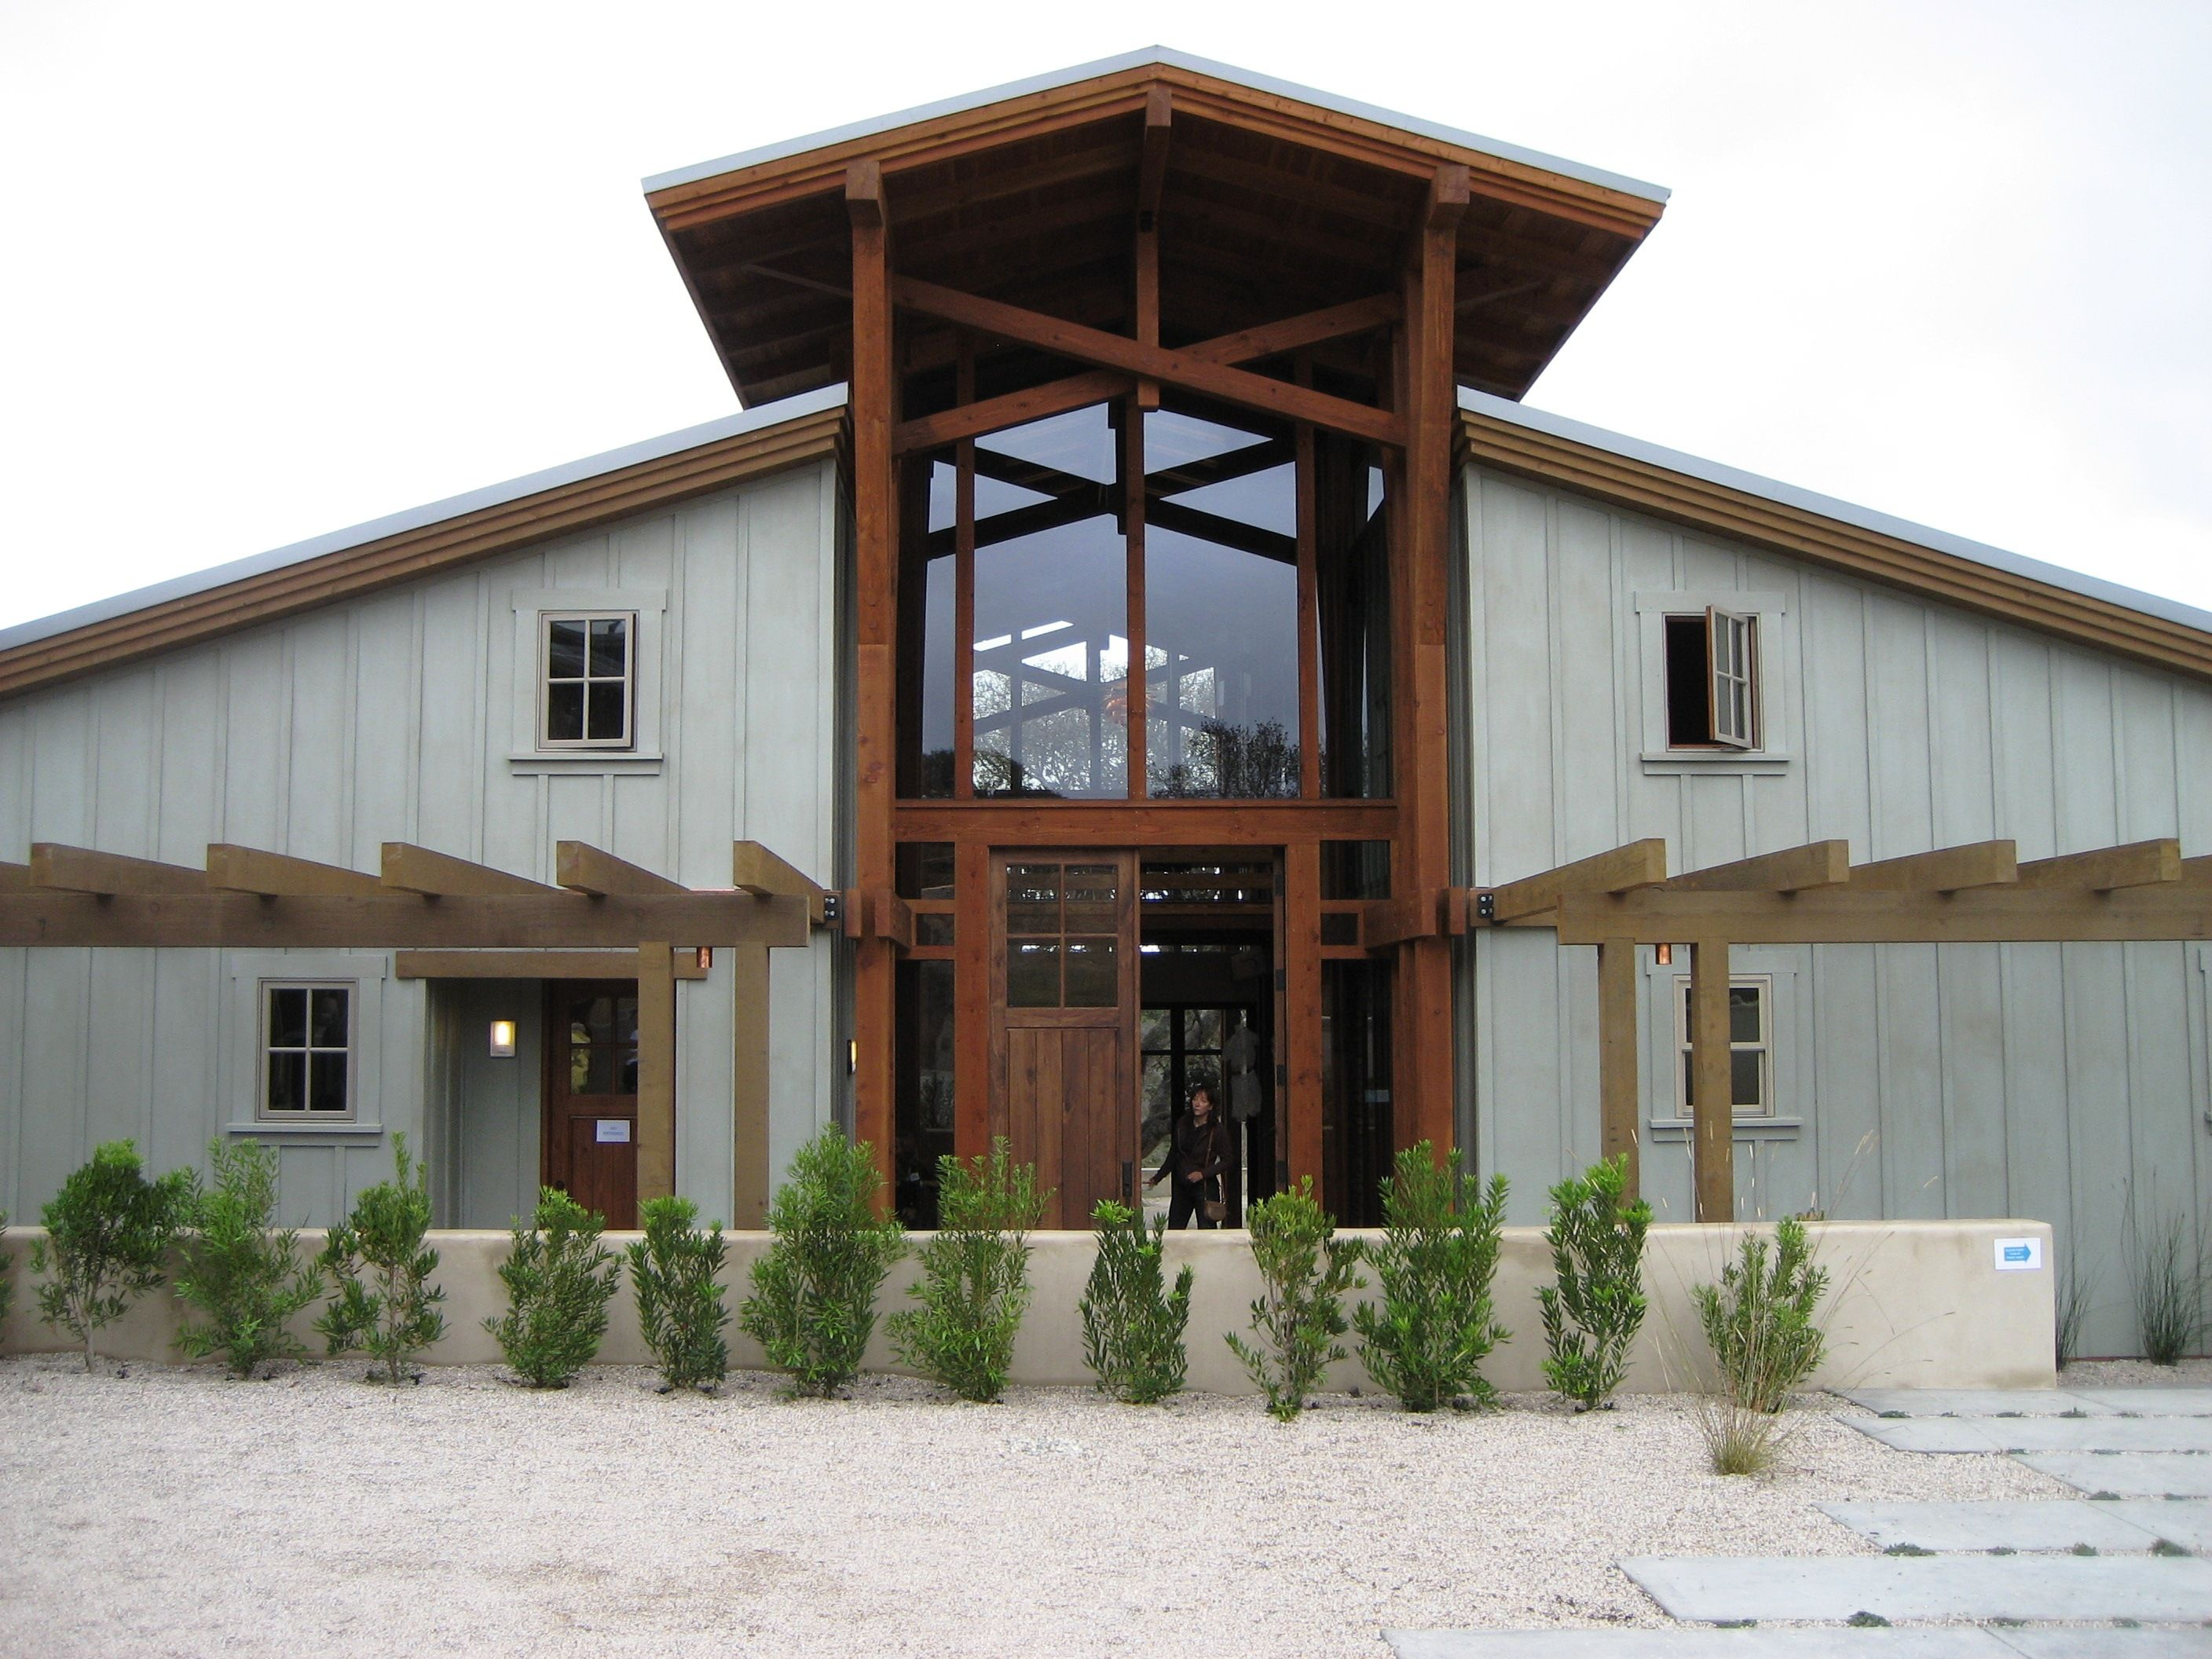 Arena barn and apartment all under one roof this could for Barn style home designs